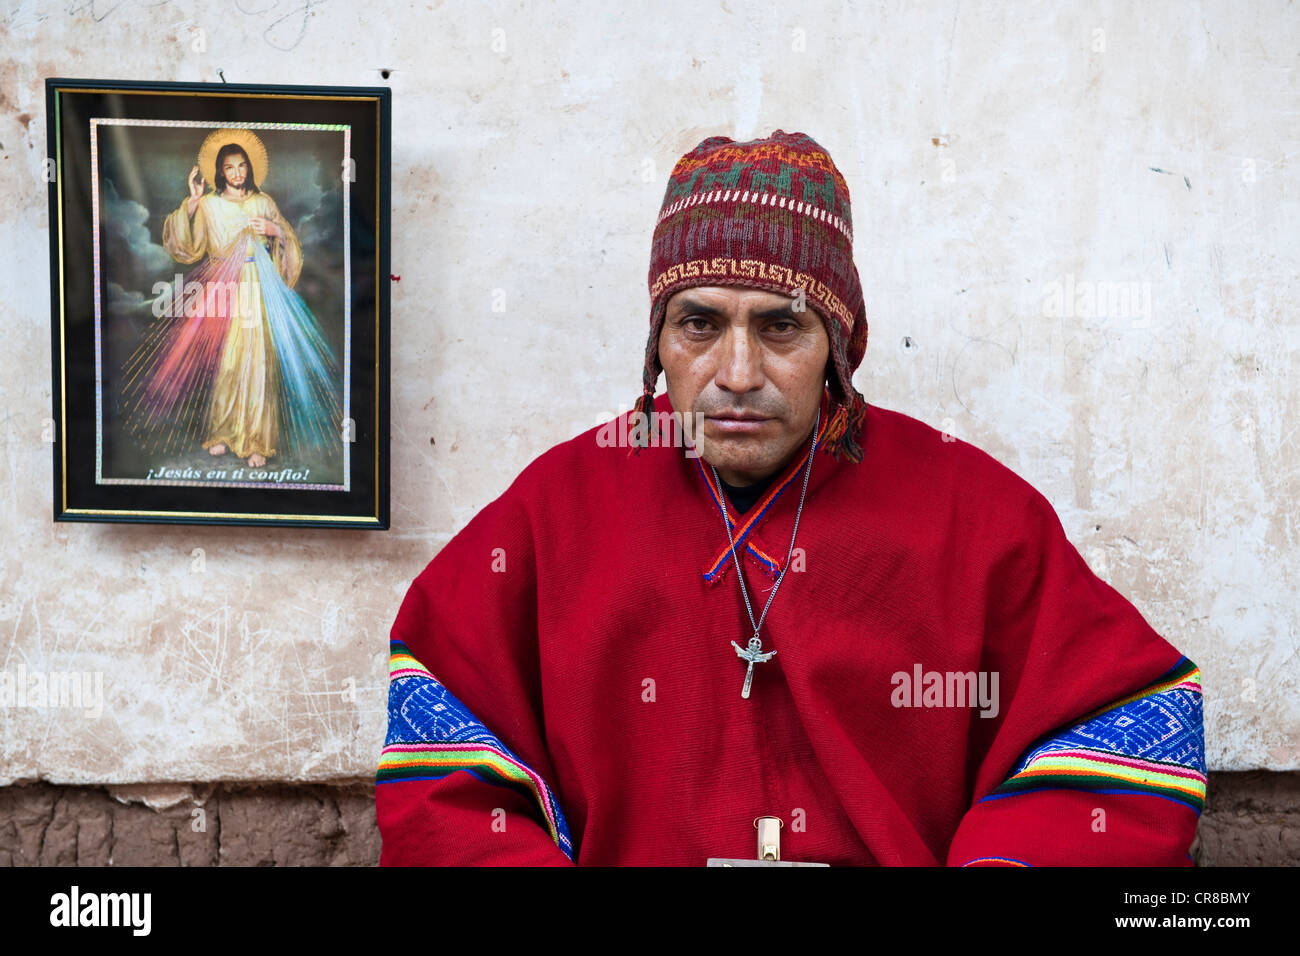 Peru Cuzco Province Huasao listed as mystical touristic village Pablo shaman curandero officiating in village ceremony - Stock Image